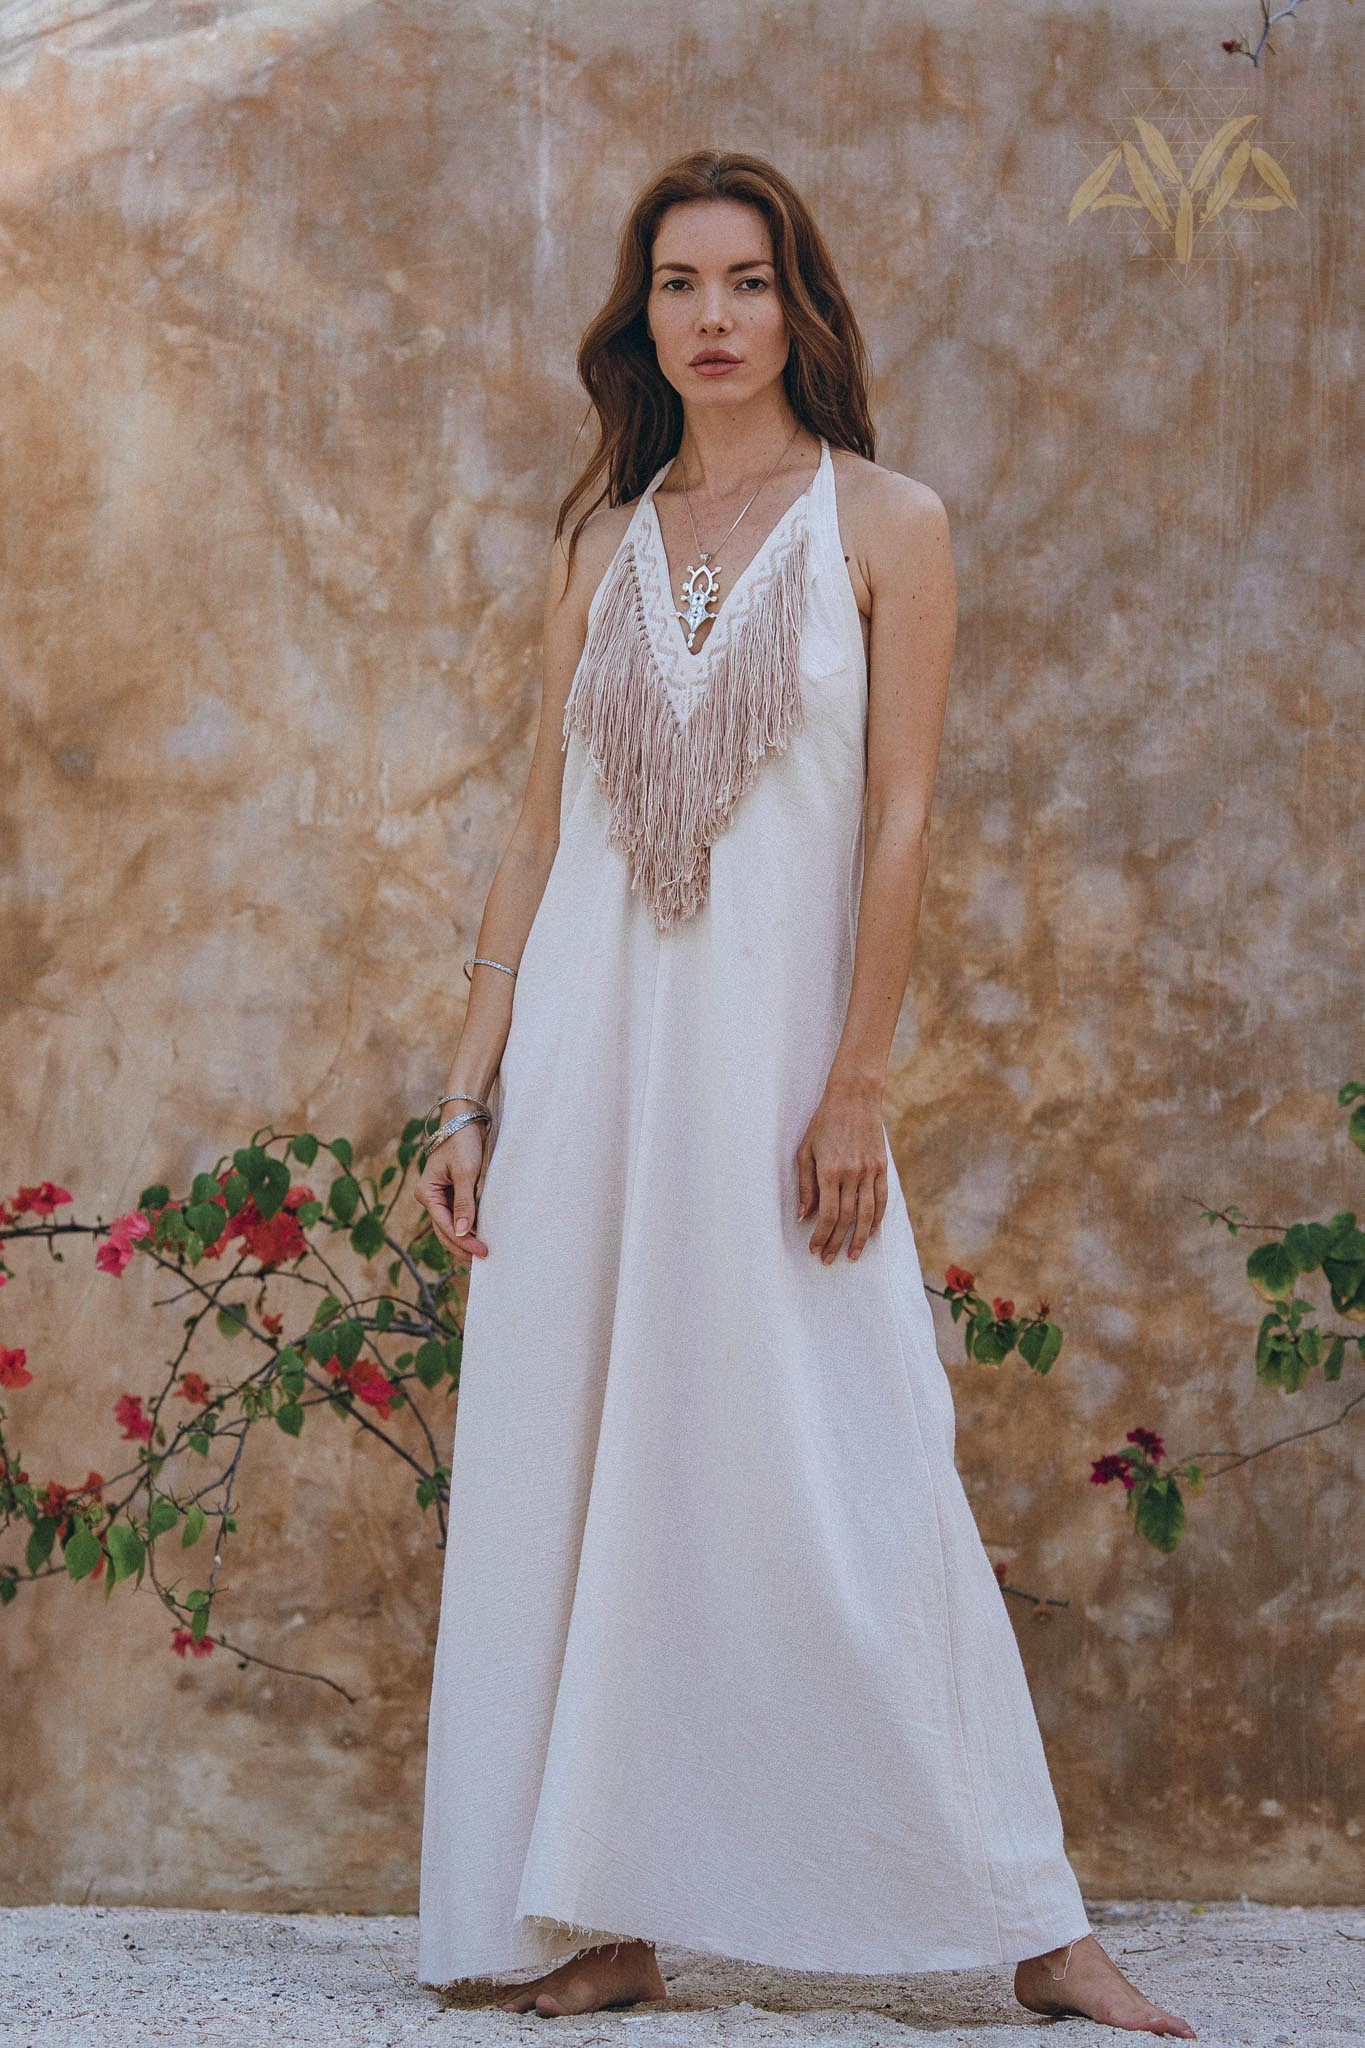 Boho Wedding Dress • Simple Wedding Dress • Off White Boho Dress - aya.eco